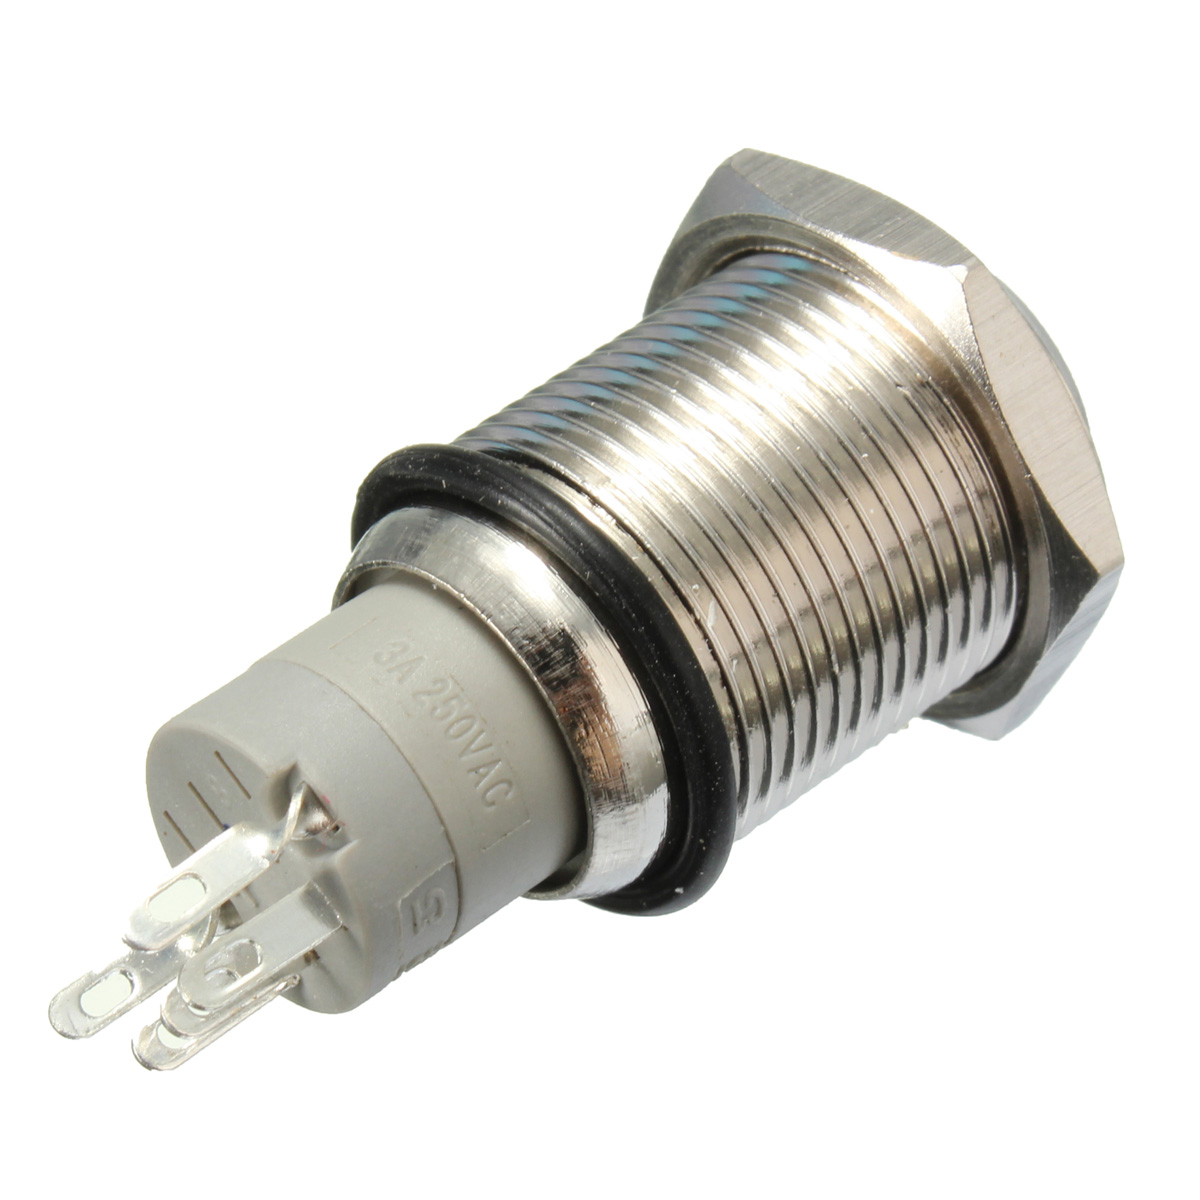 12v 16mm Waterproof Momentary Horn Metal Push Button